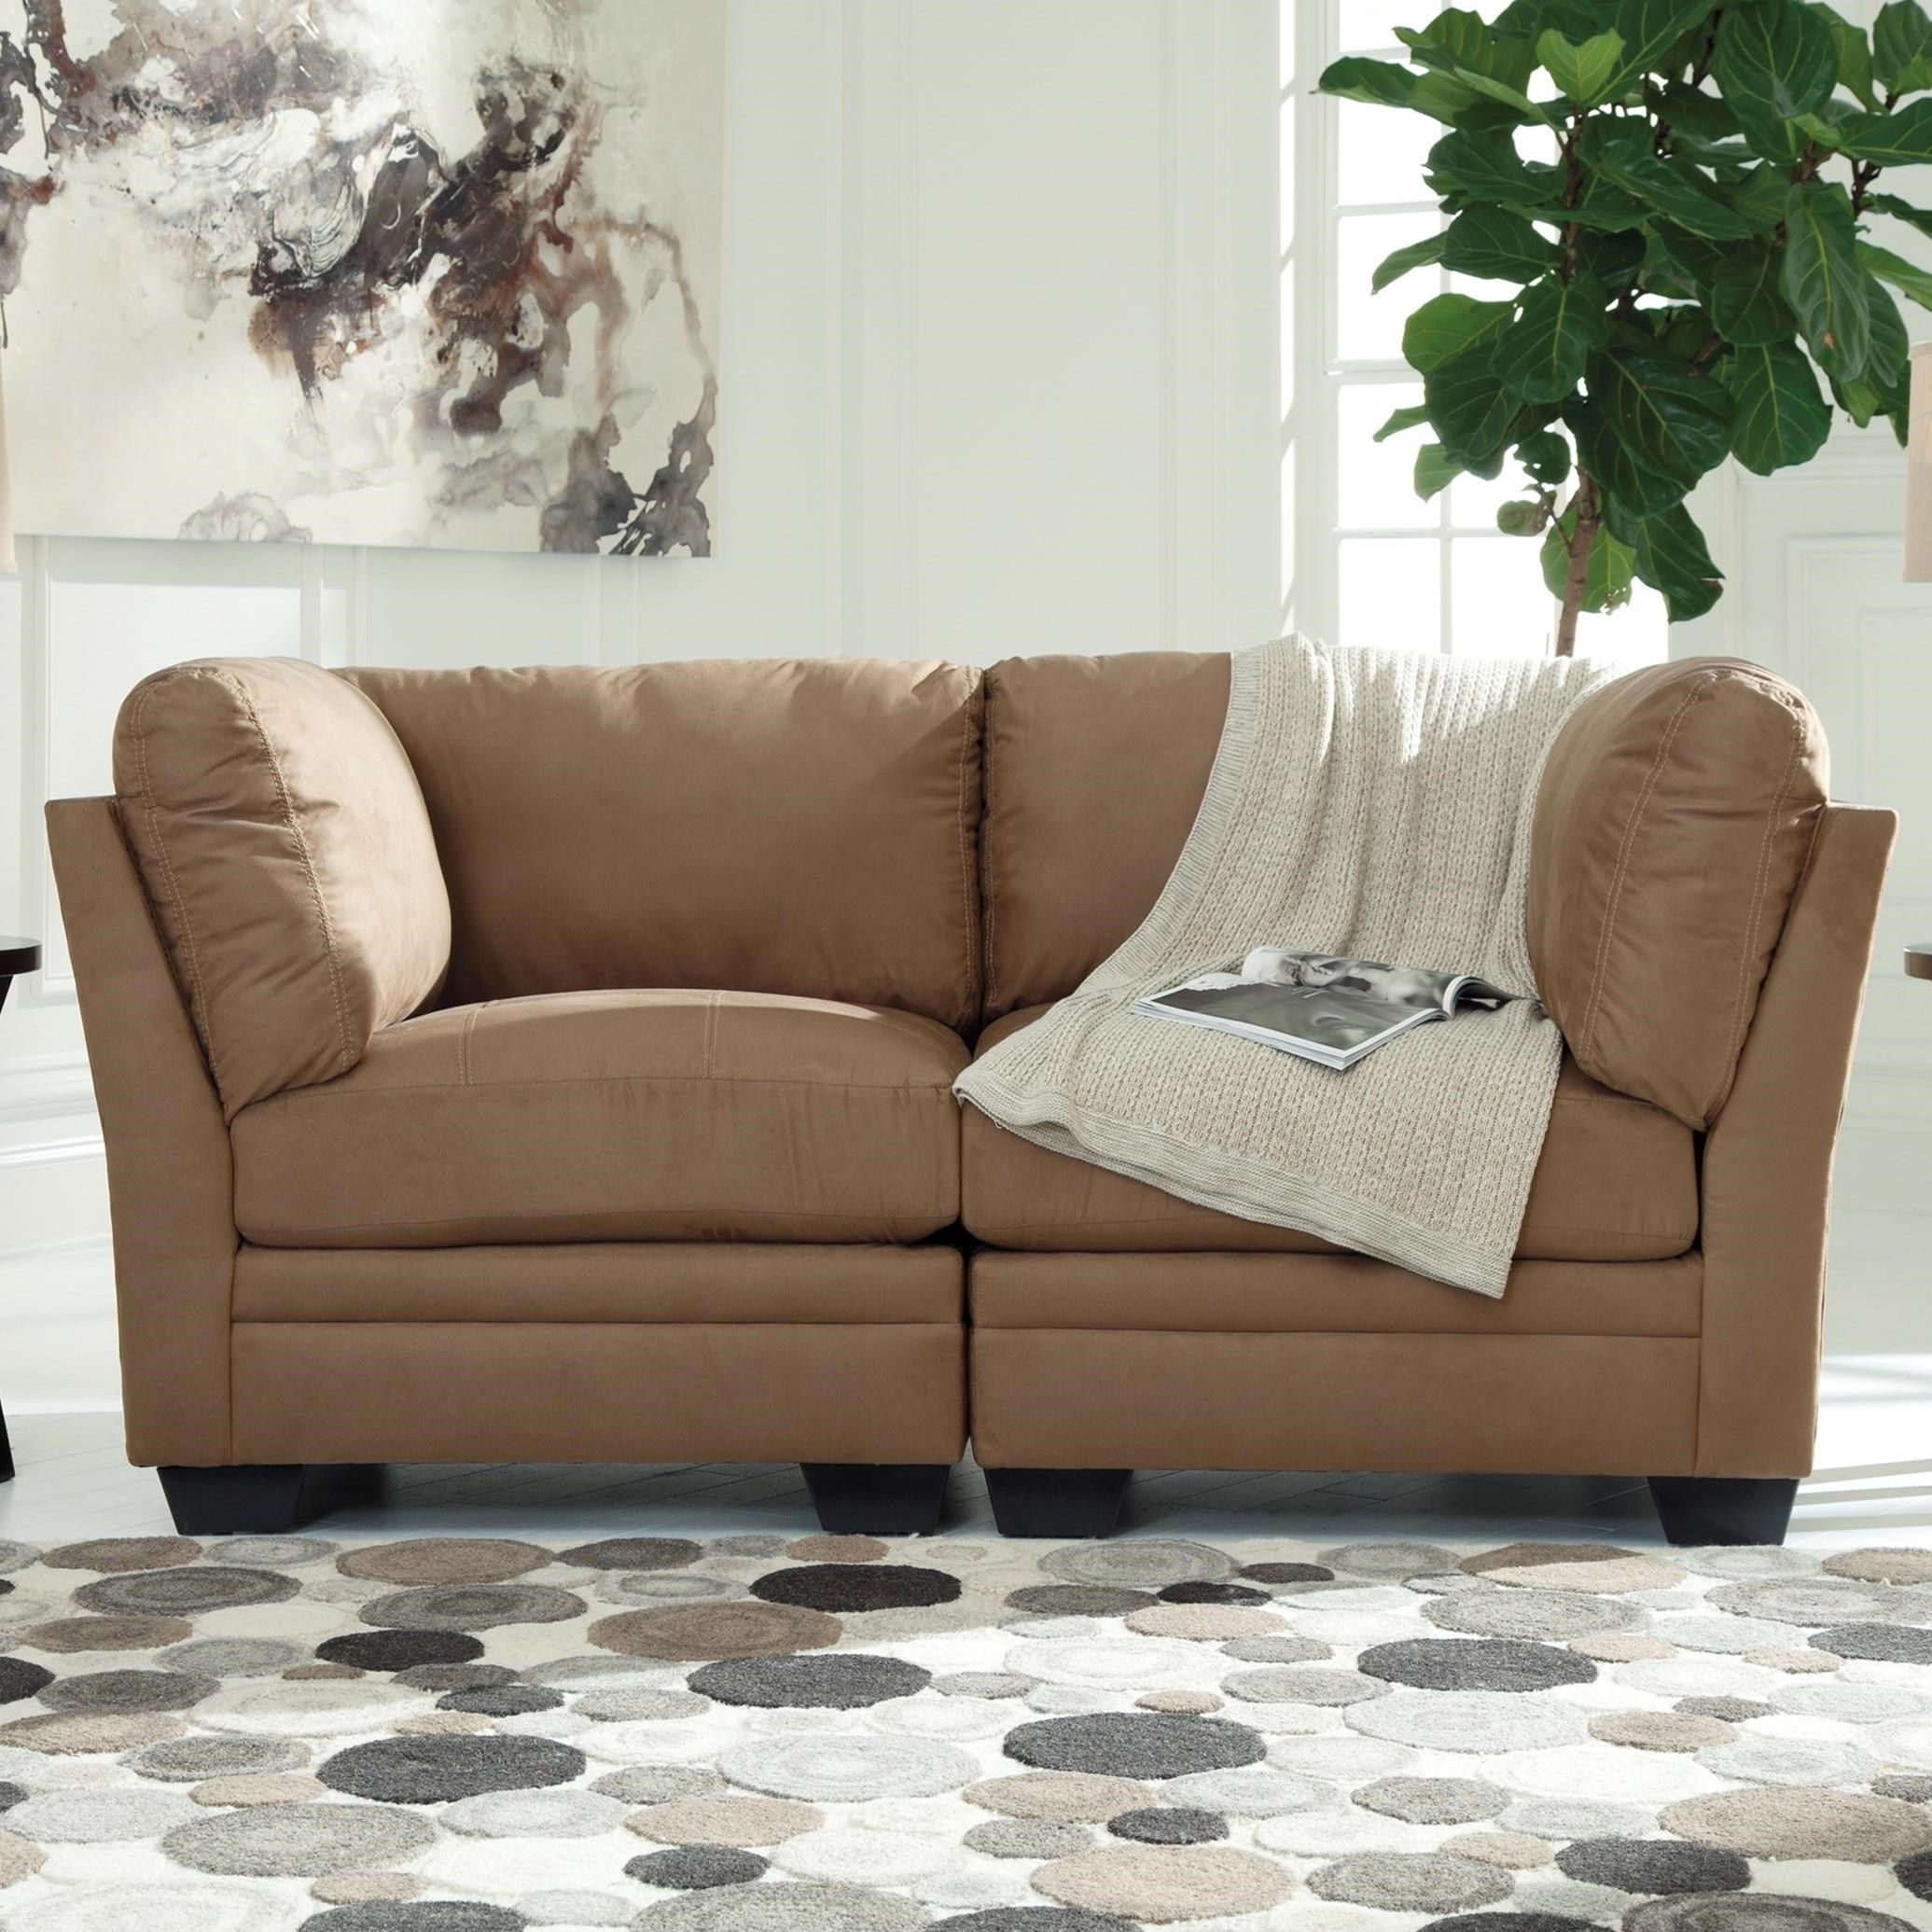 Signature Design by Ashley Iago Modular Loveseat - Item Number: 6510551x2